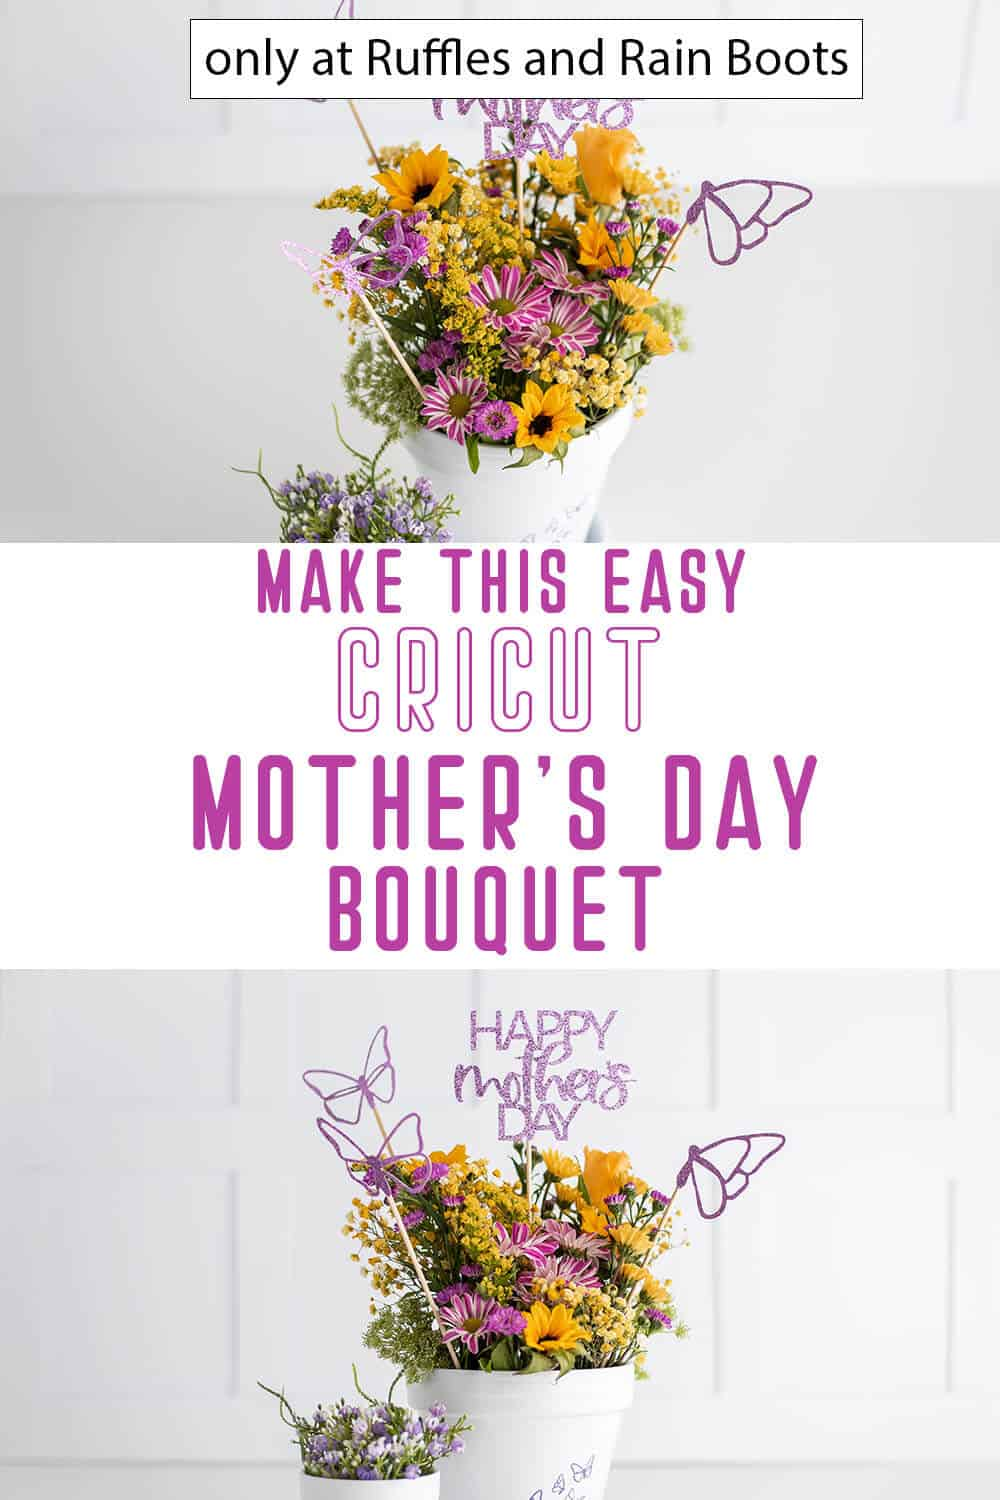 photo collage of mother's day bouquet flower pick cricut craft with text which reads make this easy cricut mother's day bouquet